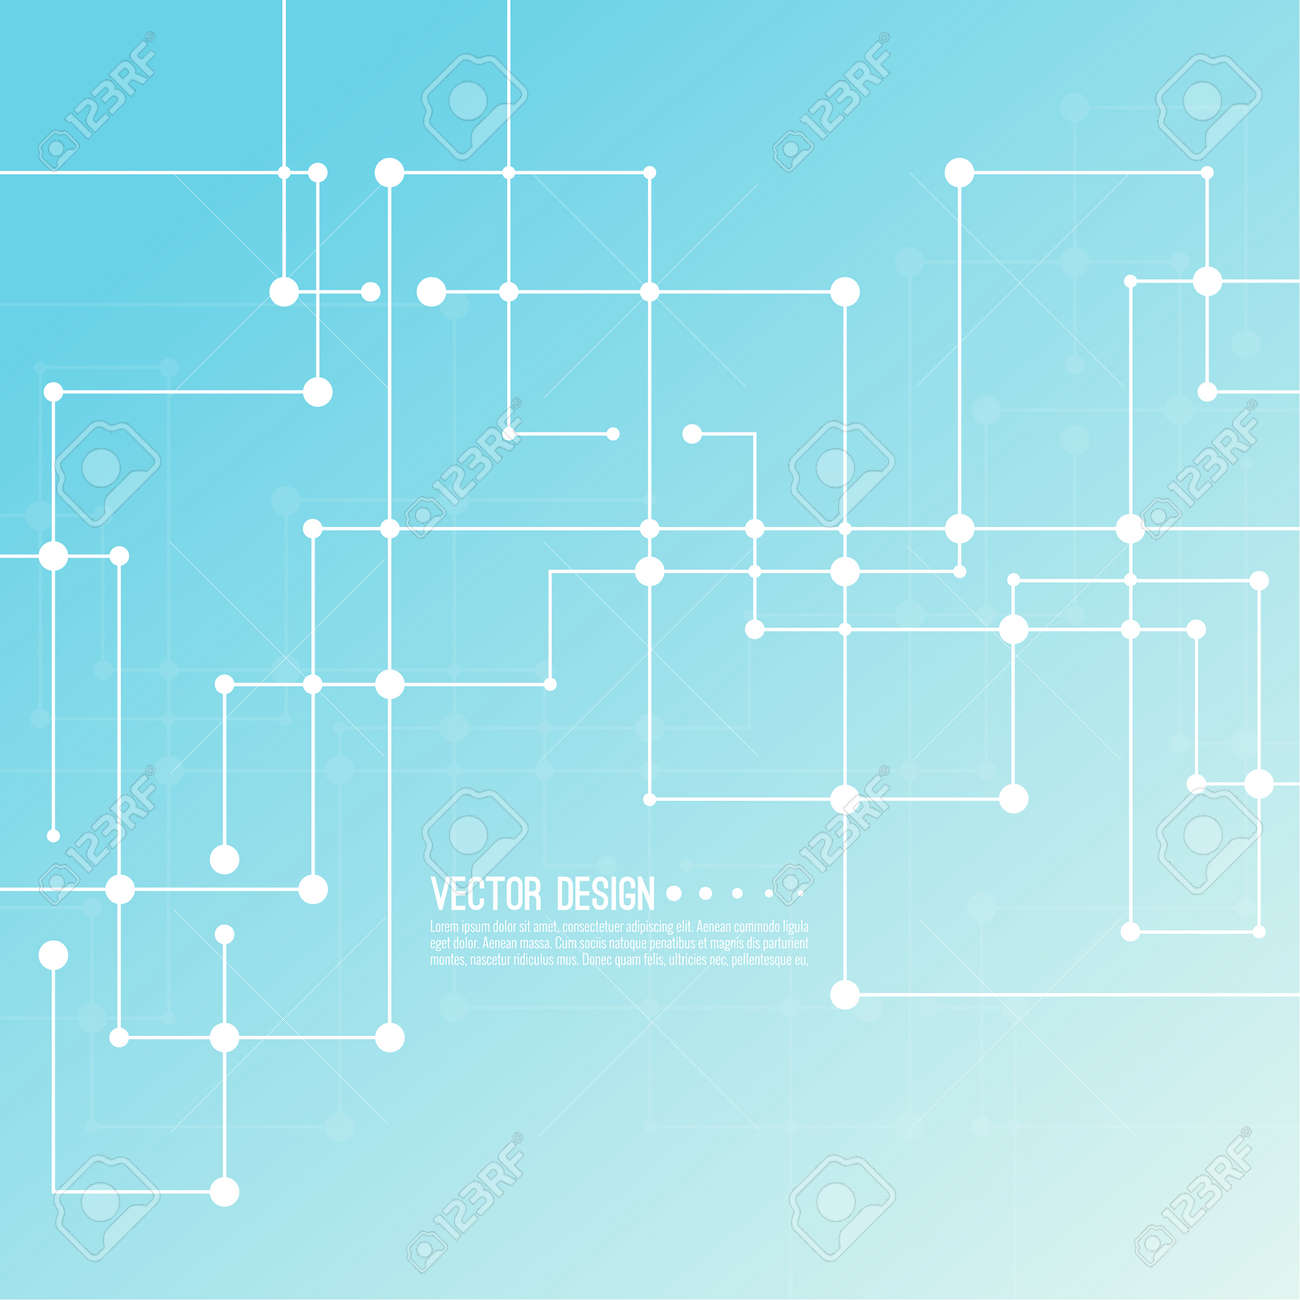 Vector abstract background. - 156531410